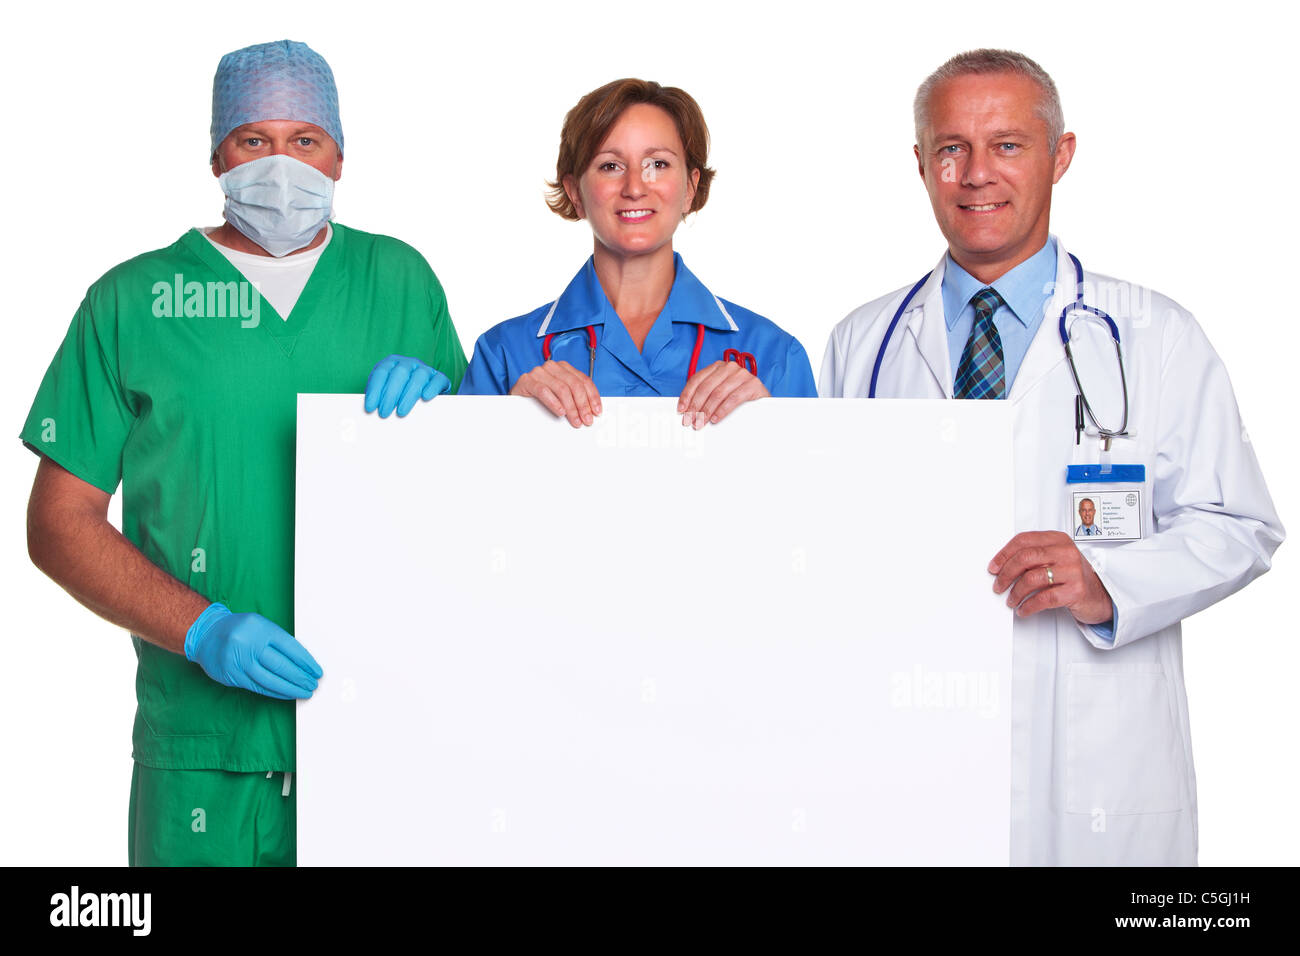 Photo of a medical team holding a blank poster for you to add your own message, isolated against a white background. - Stock Image